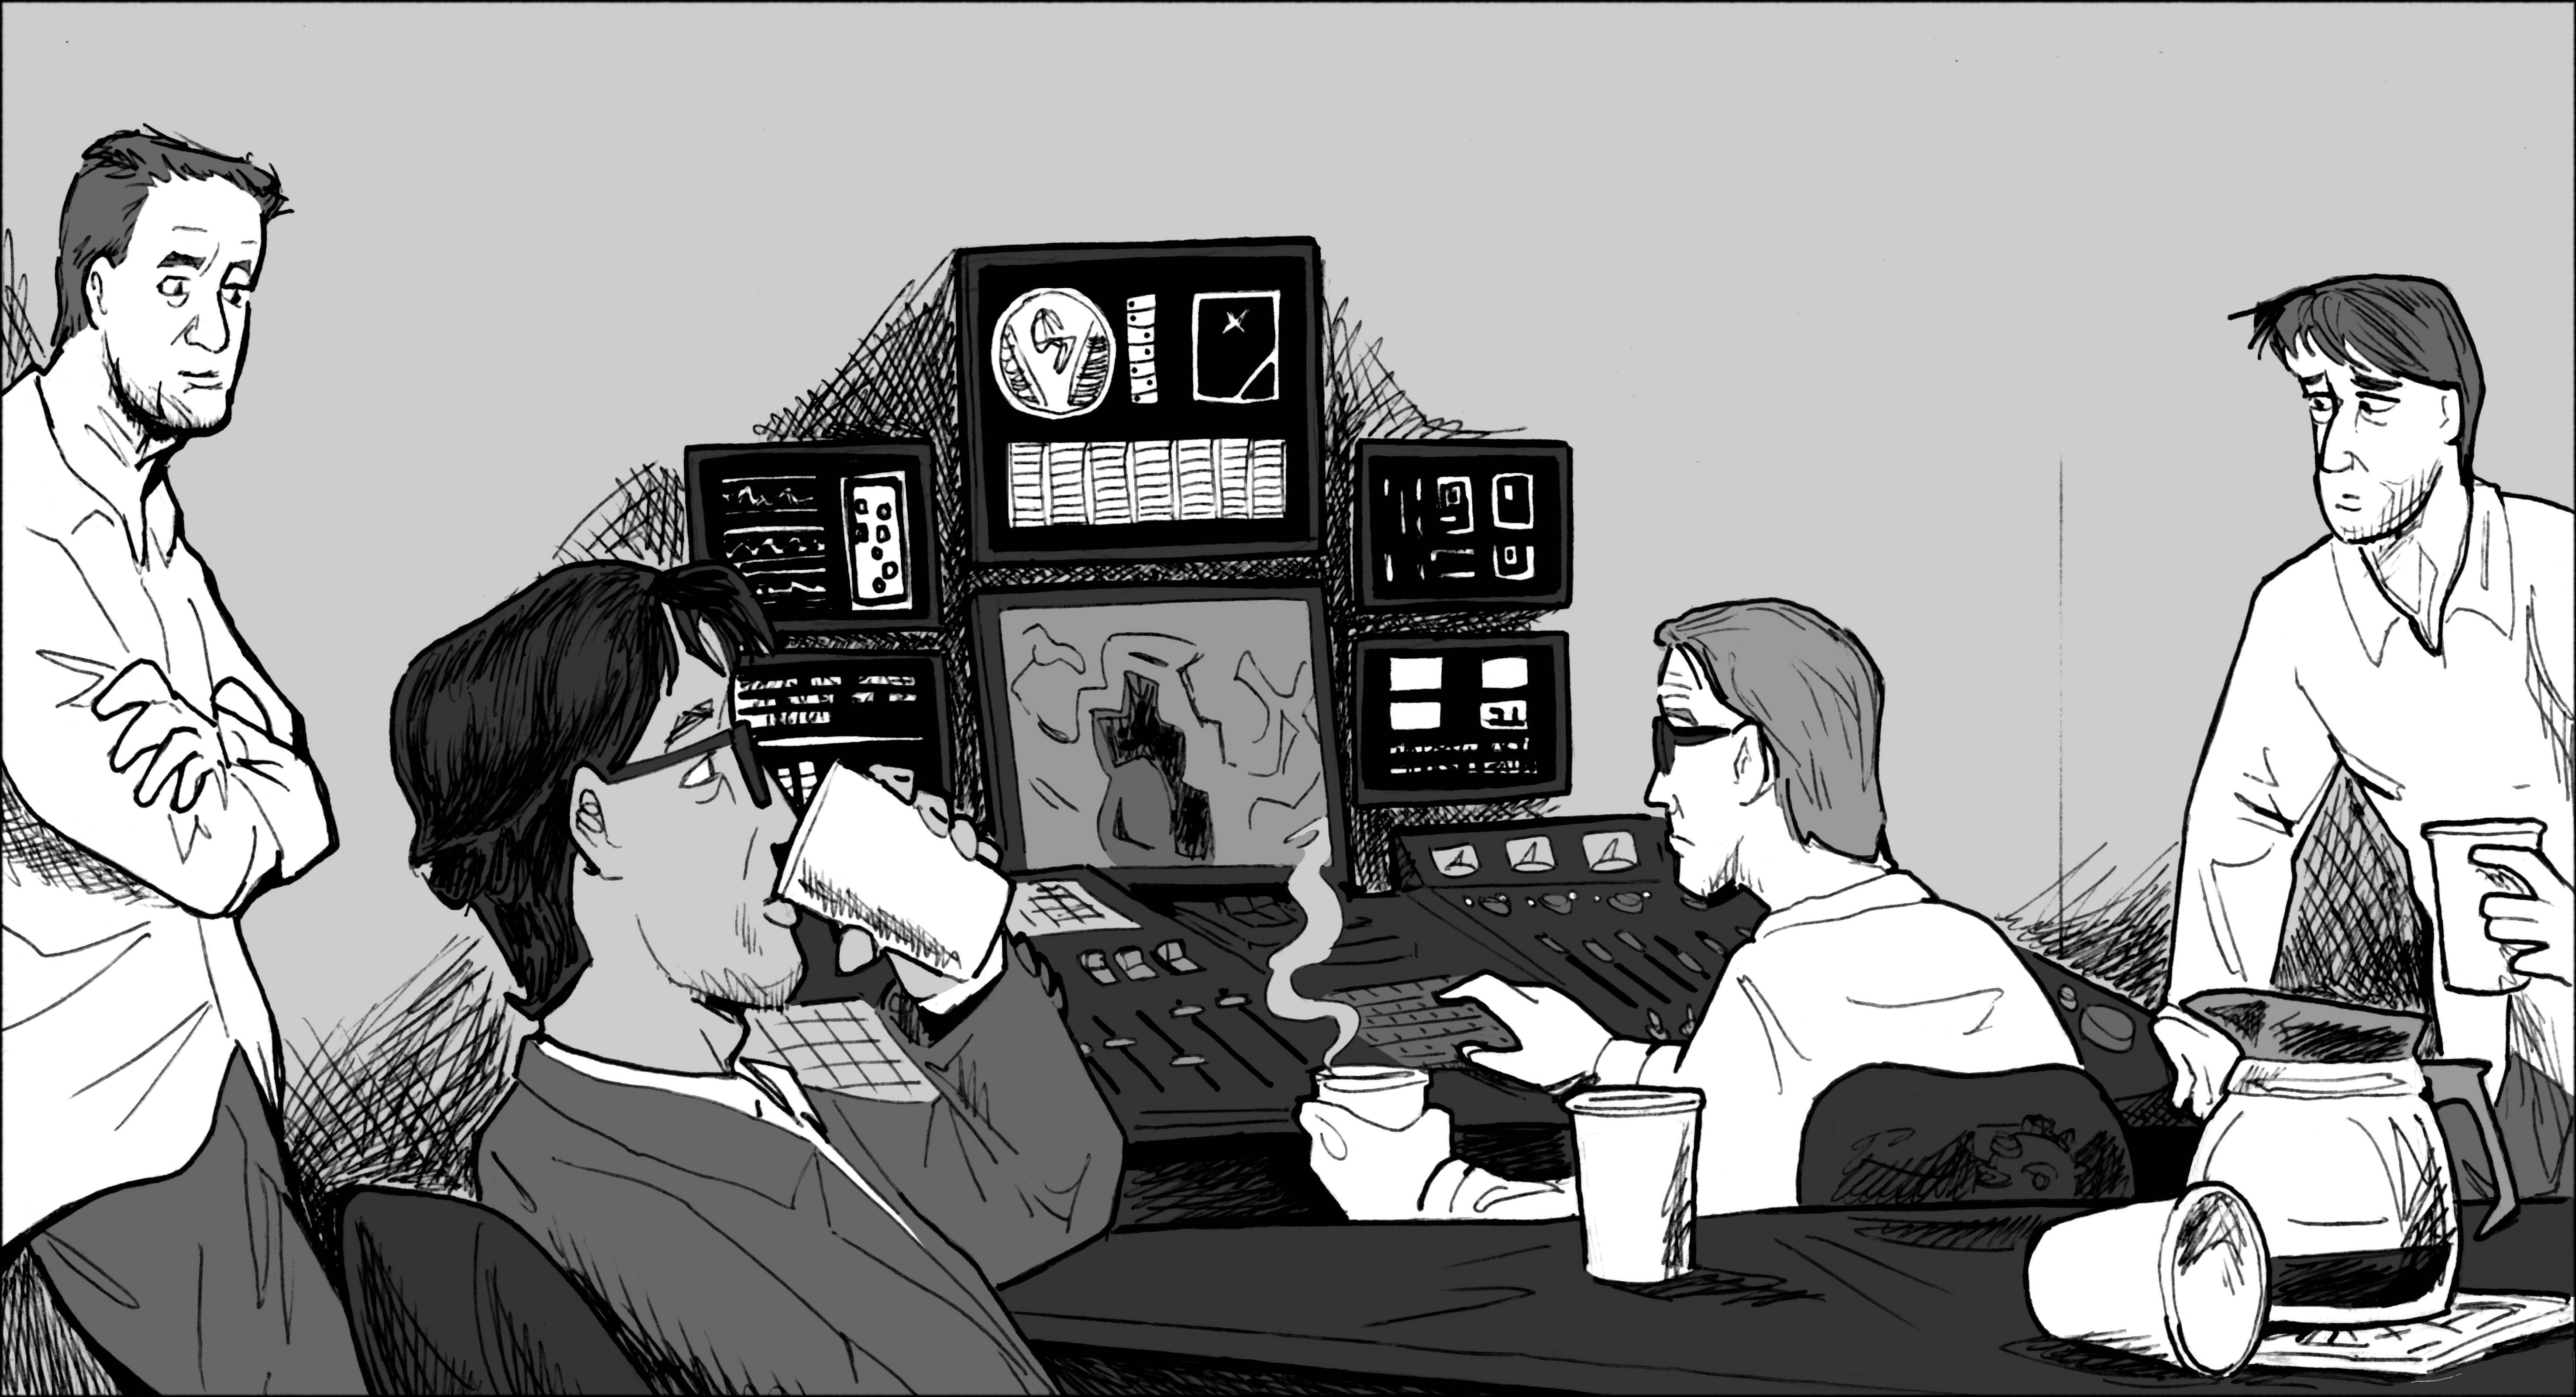 INT. CONTROL ROOM - LATER The crowd in the room is thinner.  There are empty and half-drunk coffee cups strewn around.  Joe and Harry look tired. HARRY Anything, Ernie? ERNIE Still silent, Dr. Lal. Joe takes out a metal flask from the hip pocket of his jacket and takes a swig, then offers the flask to Harry, who waves it off.